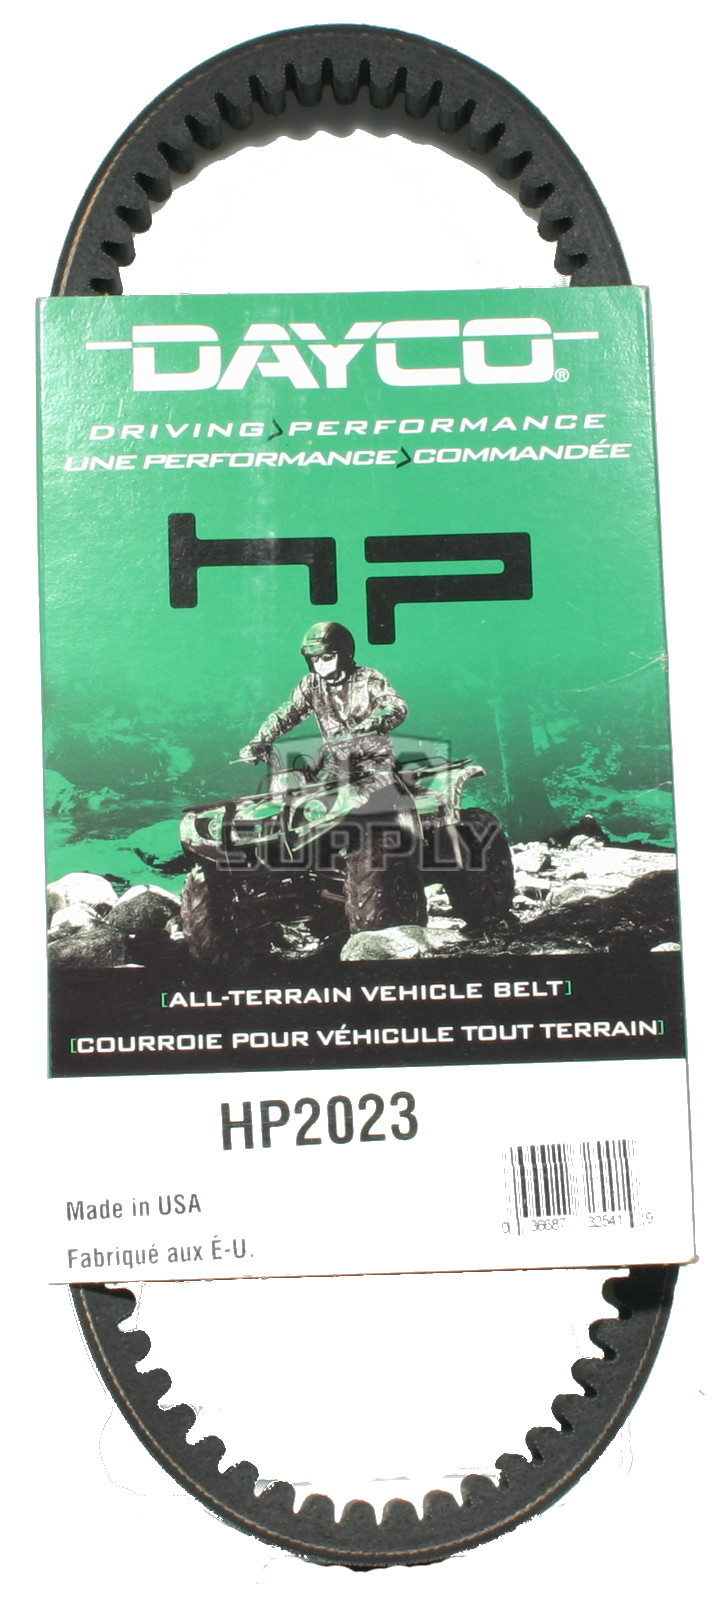 hp2023 - dayco high performance utility vehicle belt. fits